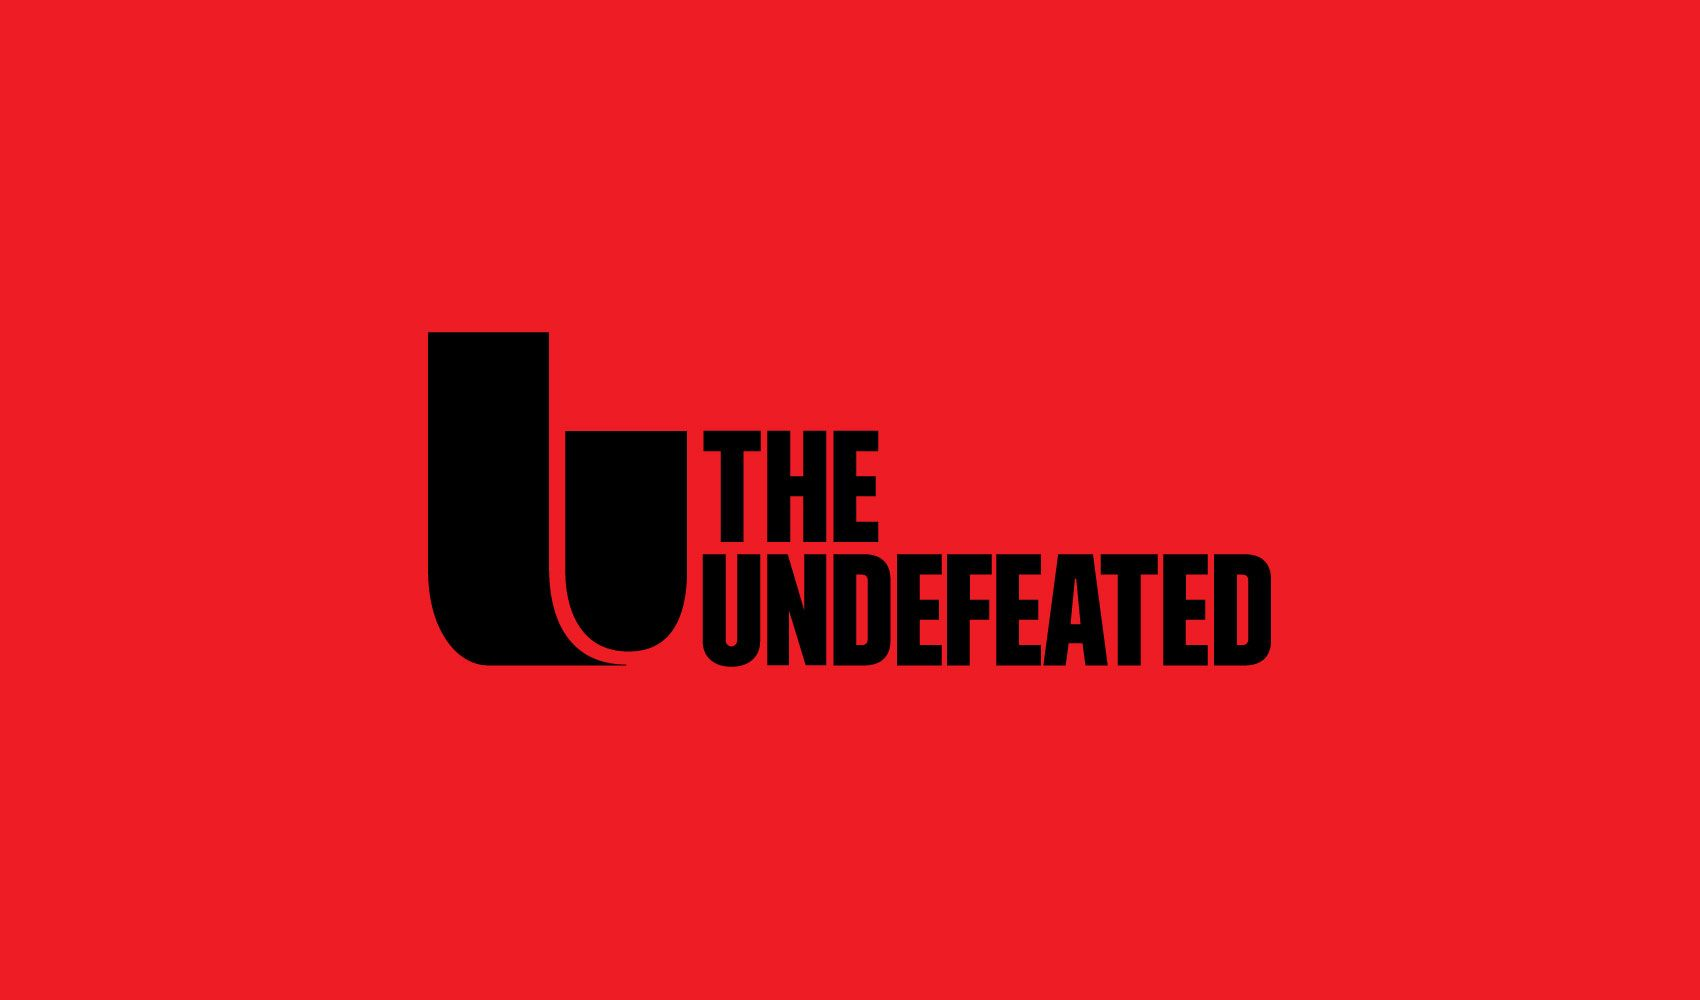 Undefeated Logo - The Undefeated — TRIBORO